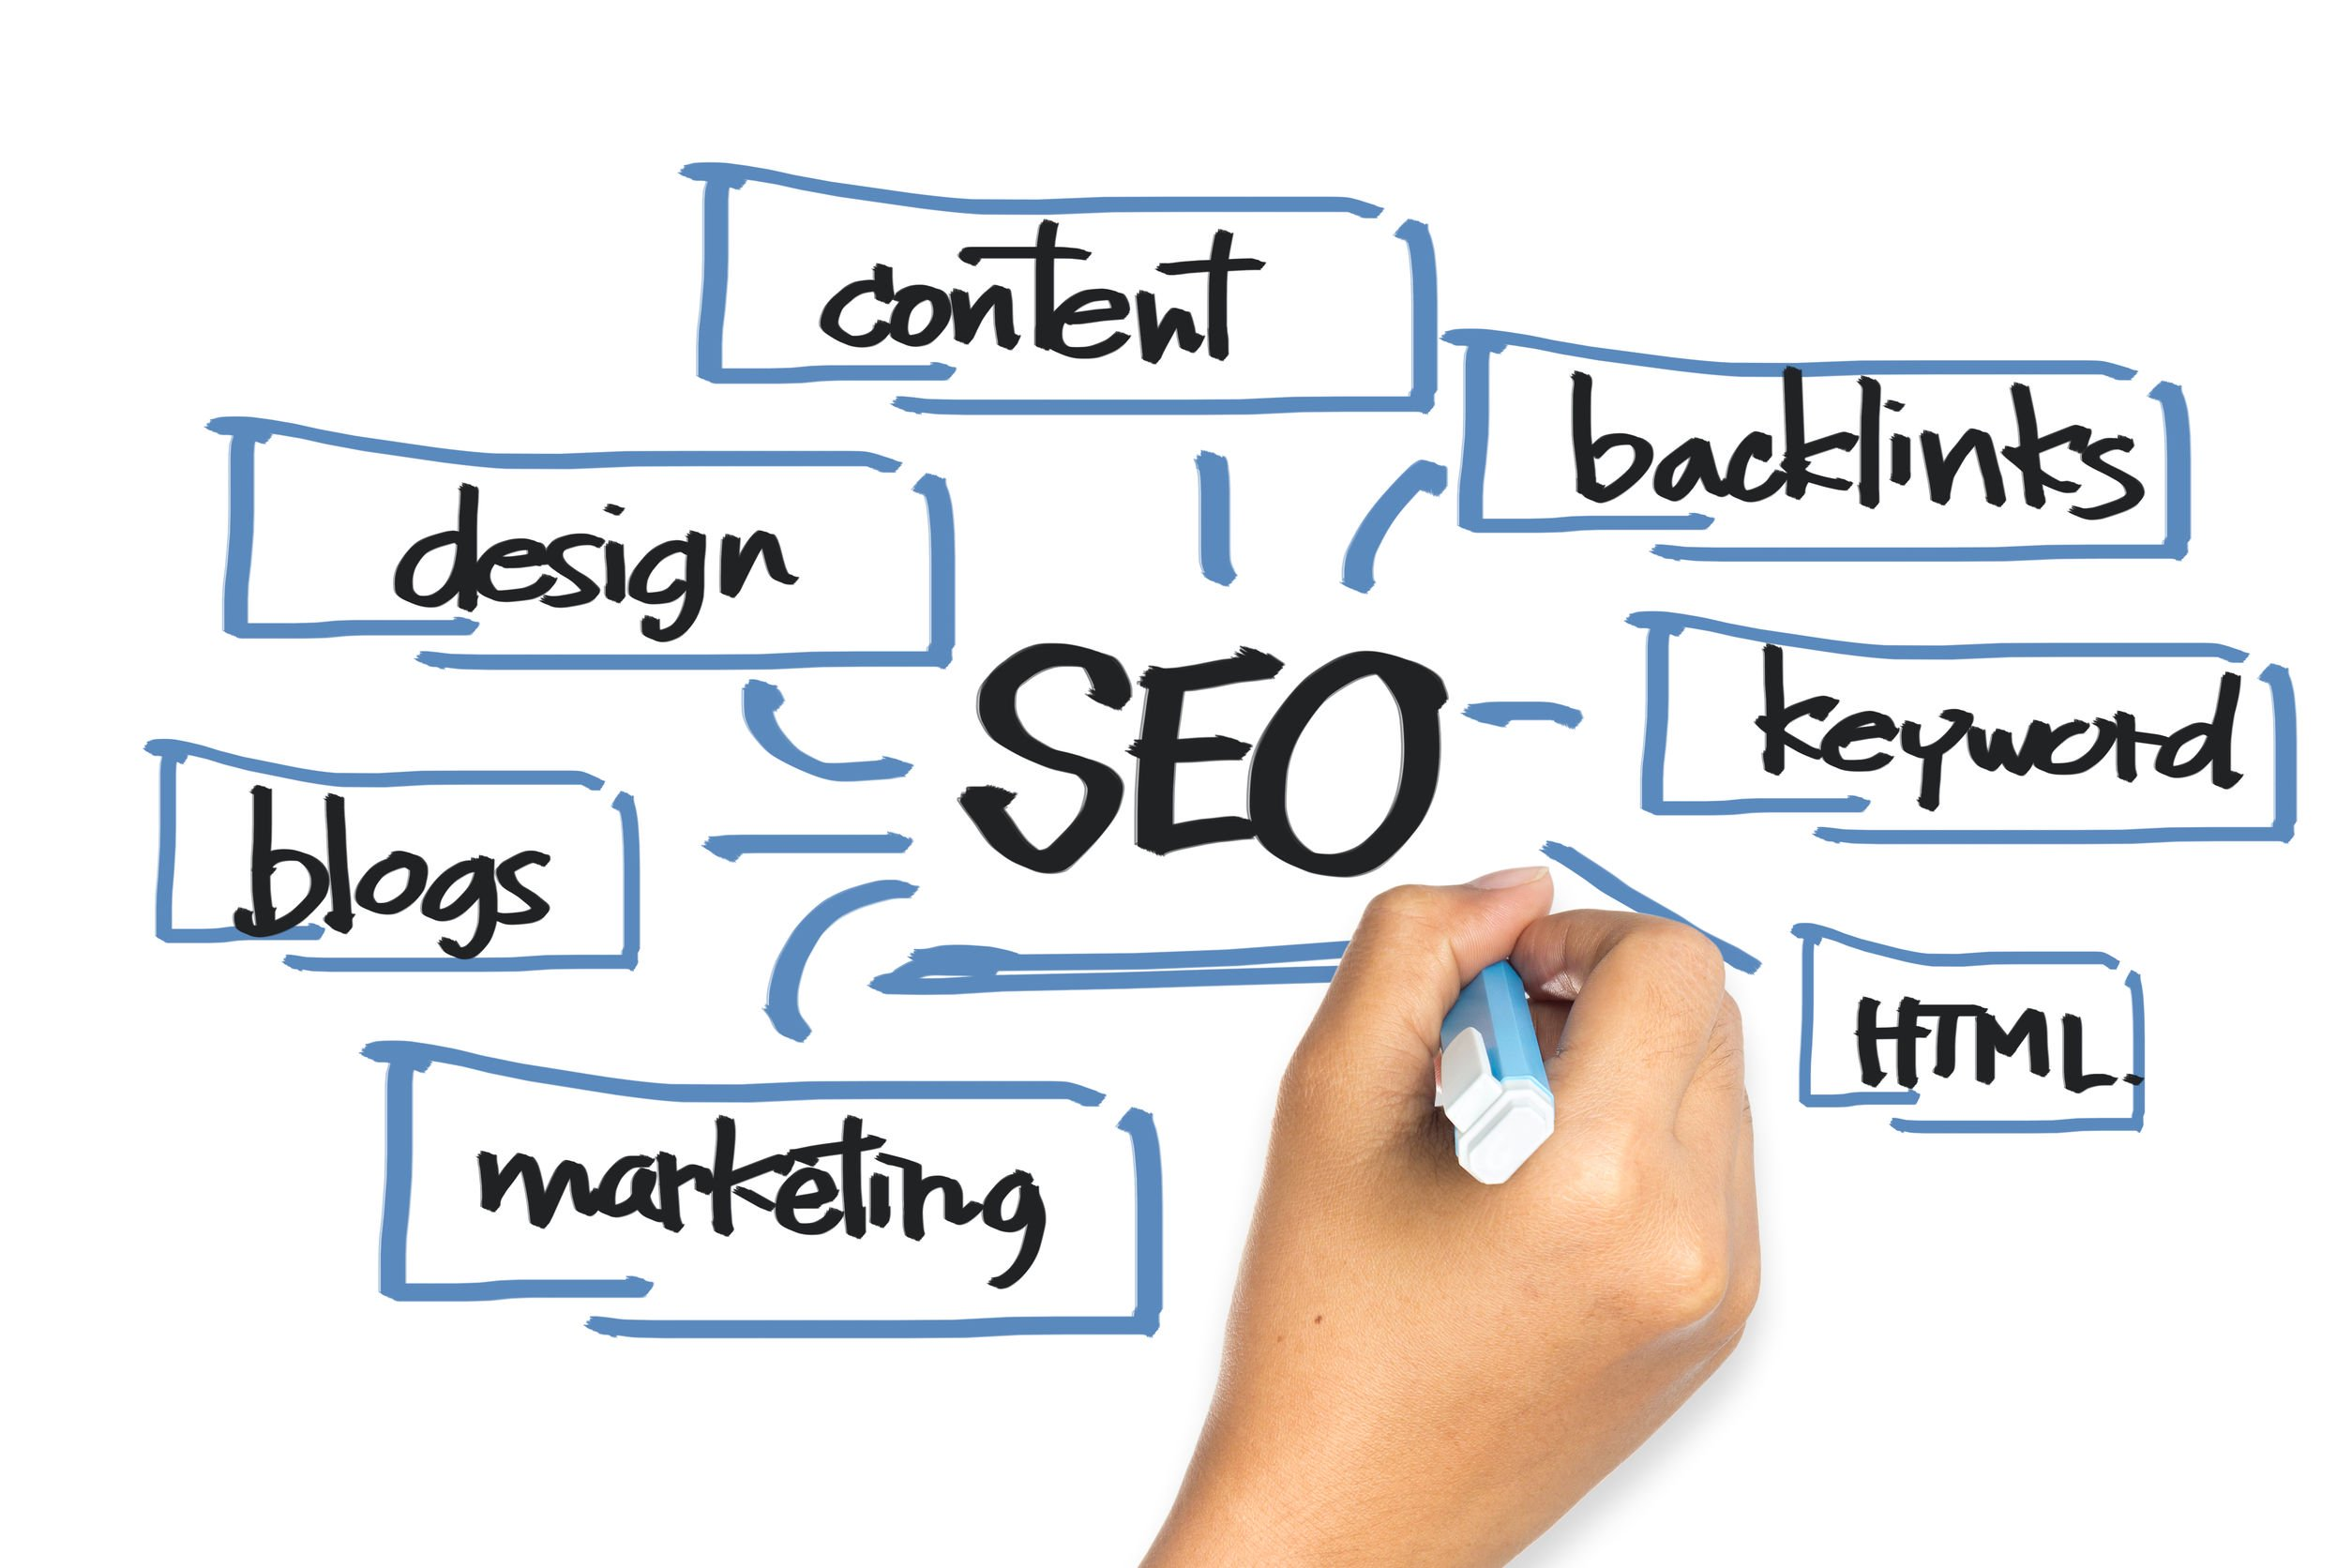 How Can Your Business Benefit from SEO?